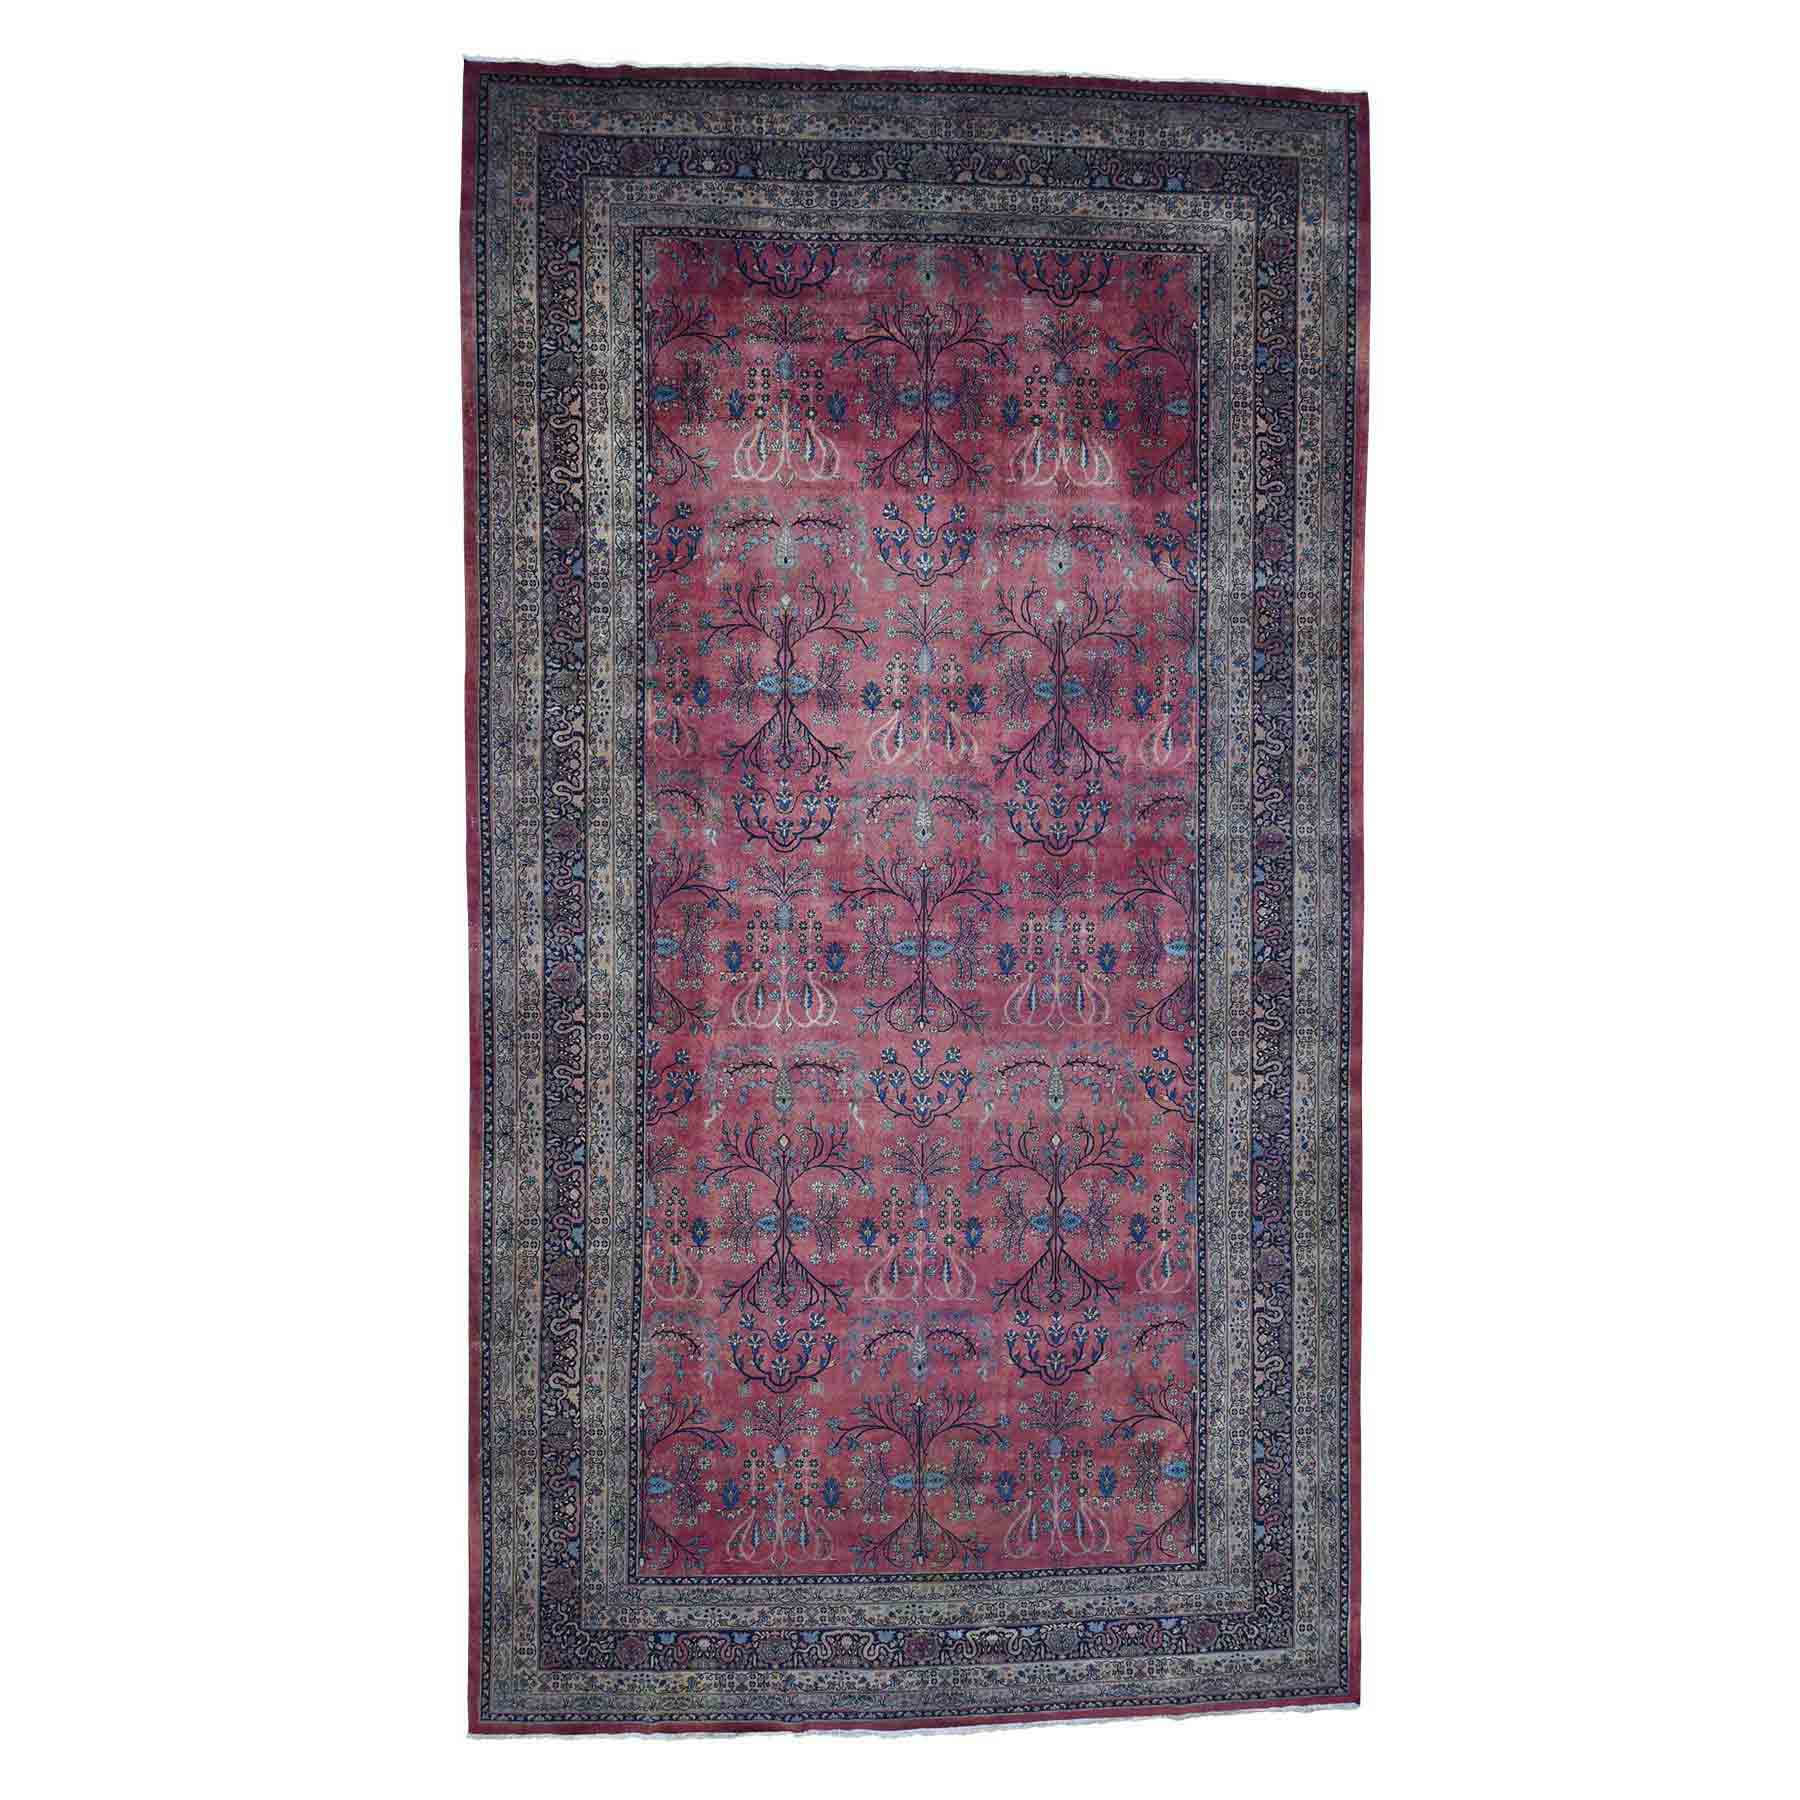 Antique-Hand-Knotted-Rug-207000